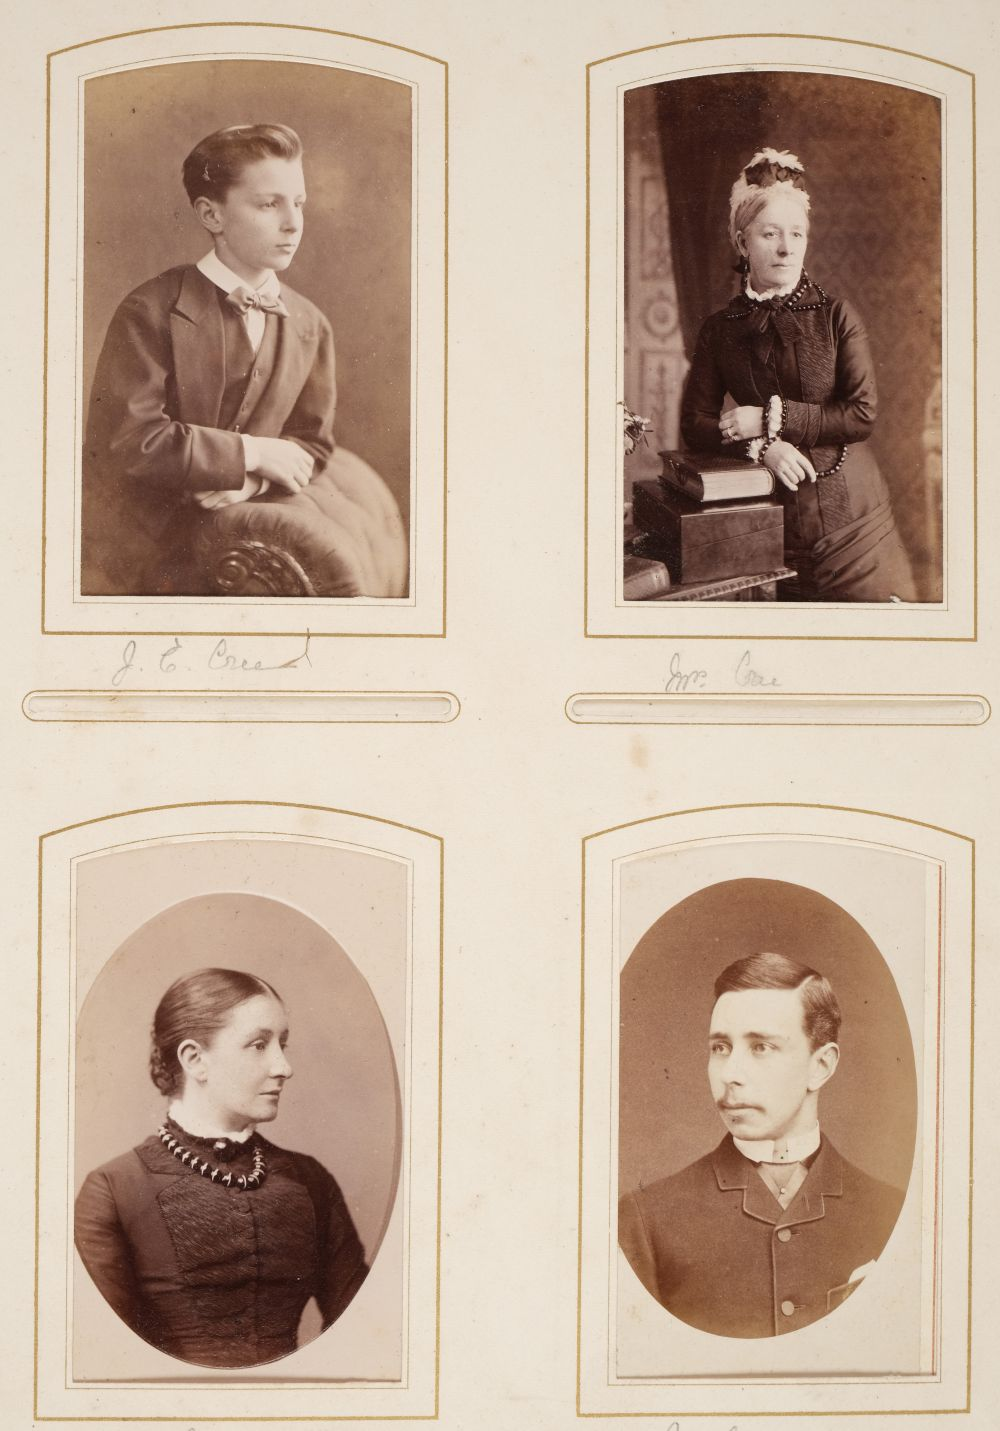 * Cartes de visite. A group of 3 albums of cartes de visite and cabinet cards - Image 16 of 26